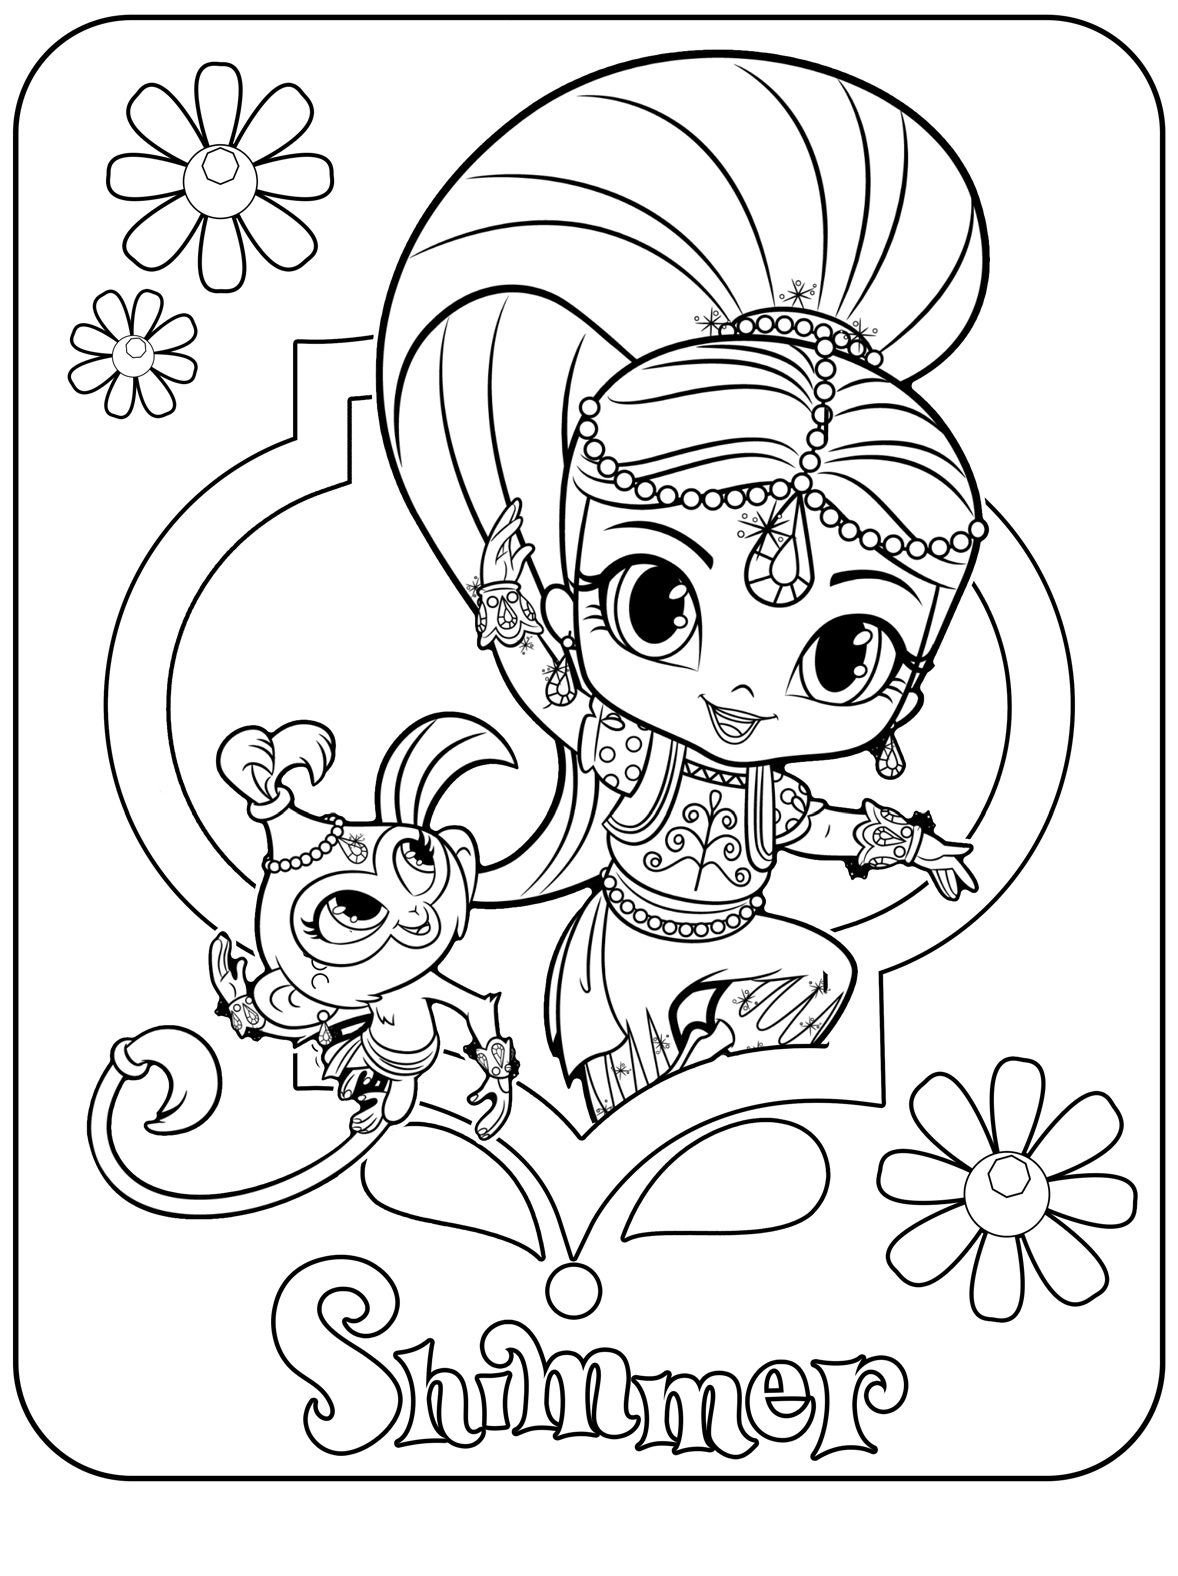 Shimmer Printable Coloring Page